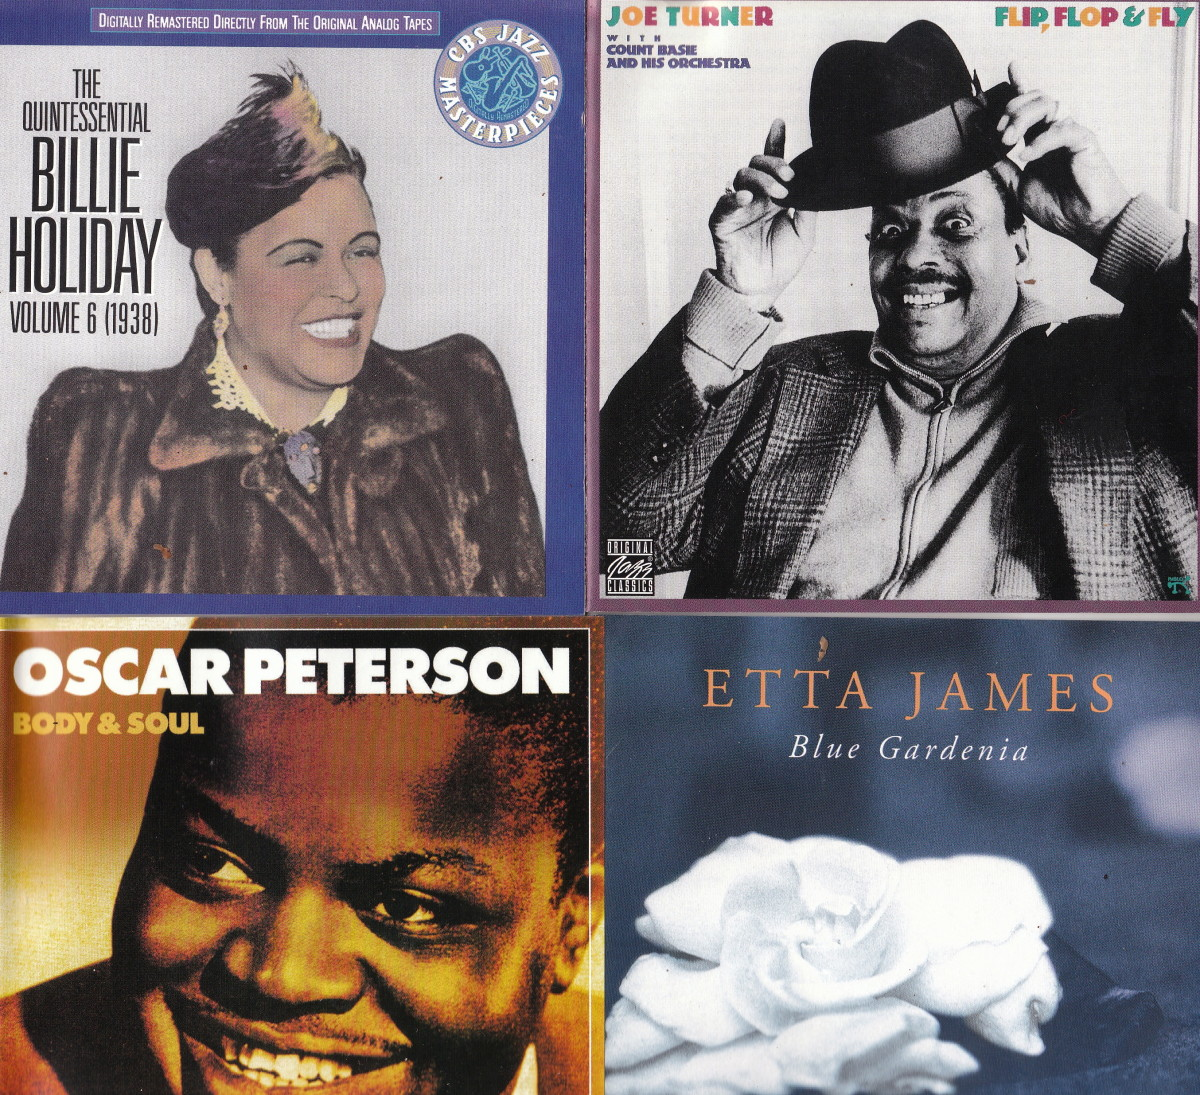 Clockwsie: Billie Holiday; Joe Turner; Oscar Peterson; Etta James